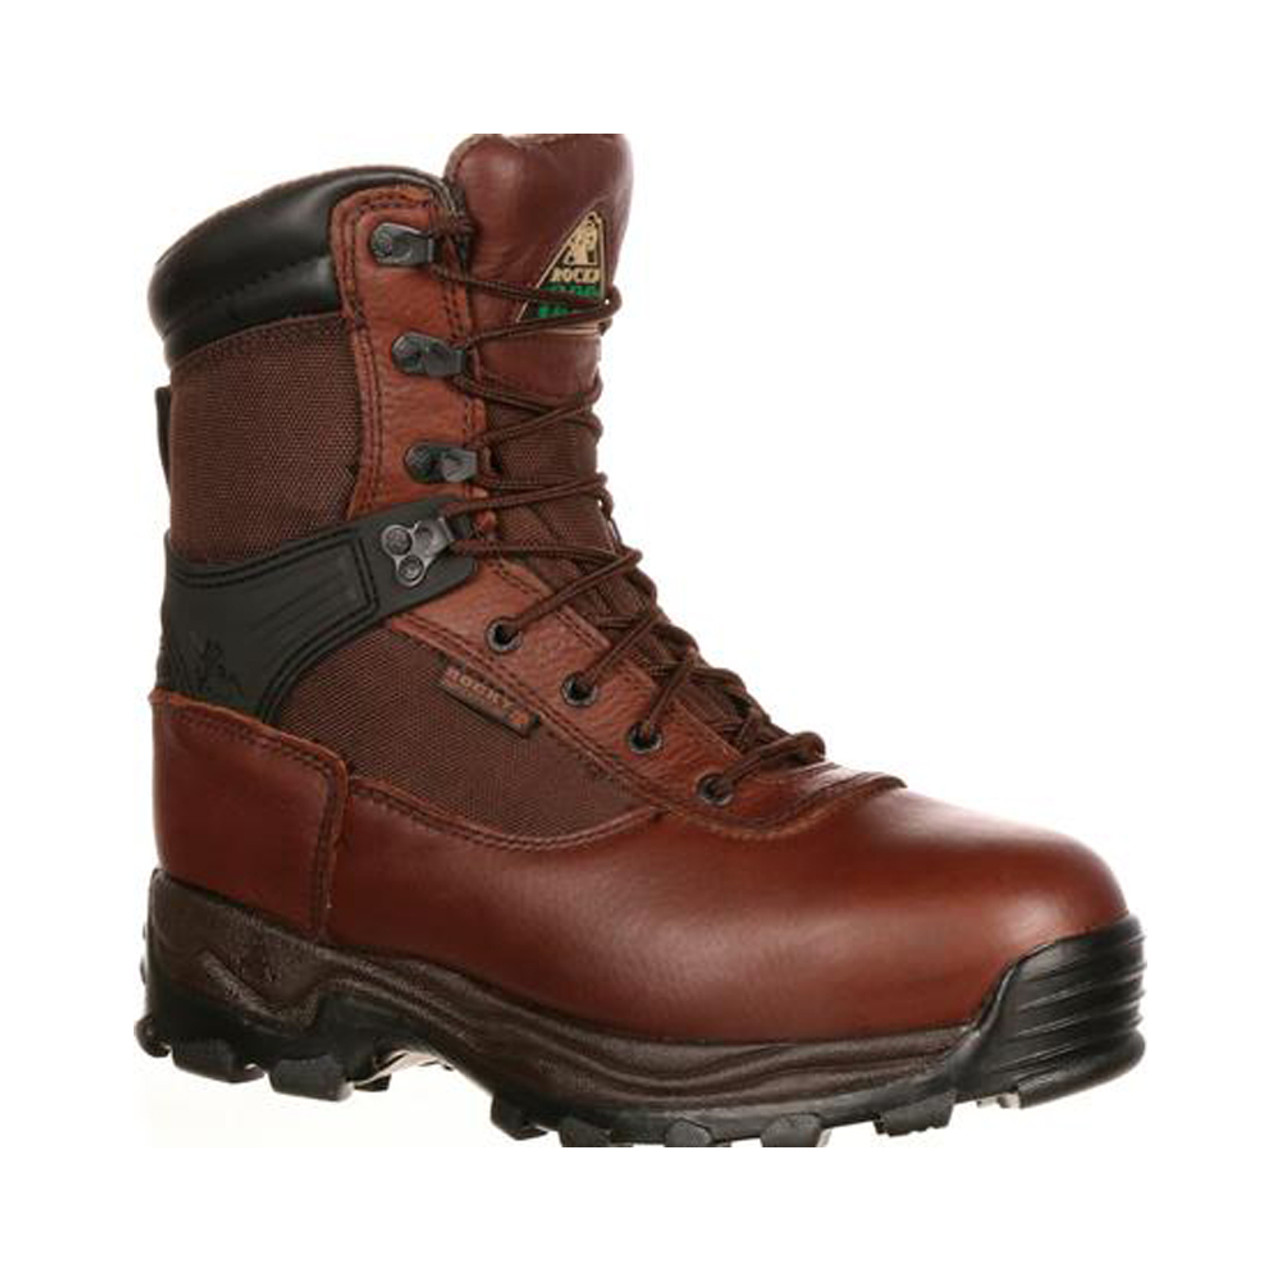 Rocky Sport Utility Pro FQ0006486 Men's 9 Inch Steel Toe Waterproof 600G Insulated UniformCasual Work Boots, available in Regular or Wide Width,